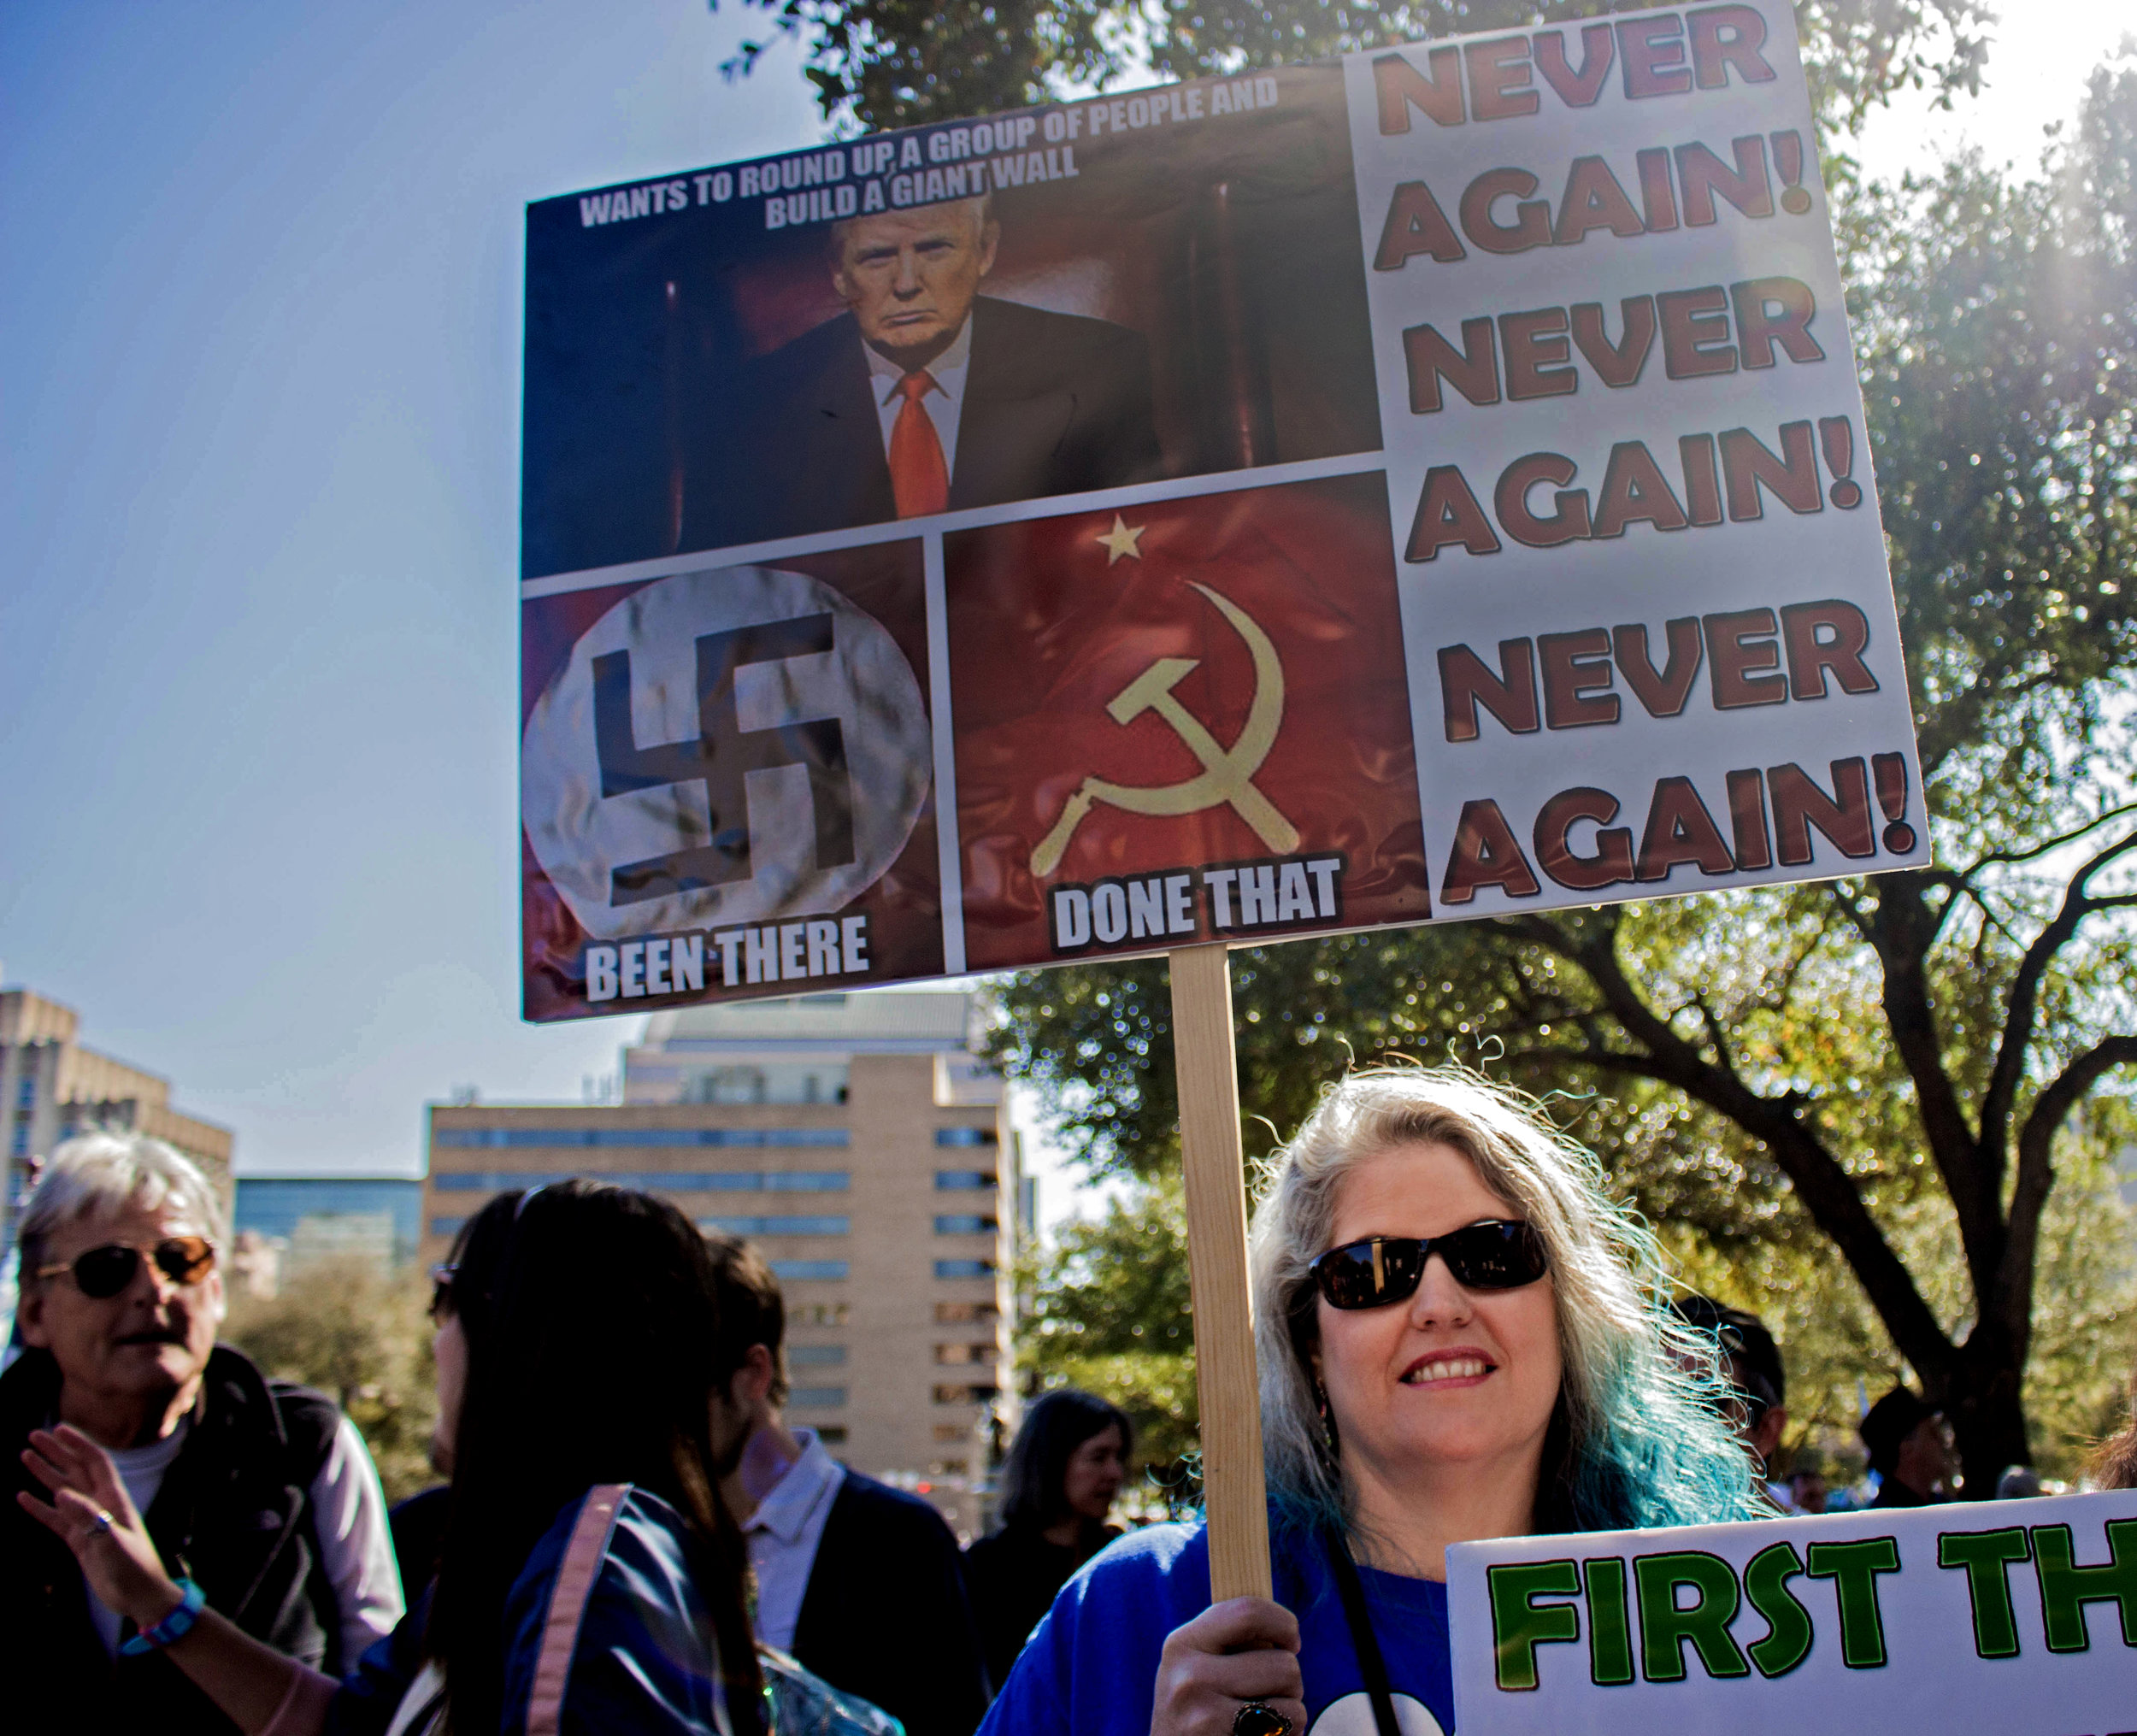 """Tanya Welch holds a sign that says, """"Never Again! Never Again! Never Again!"""" at the rally."""